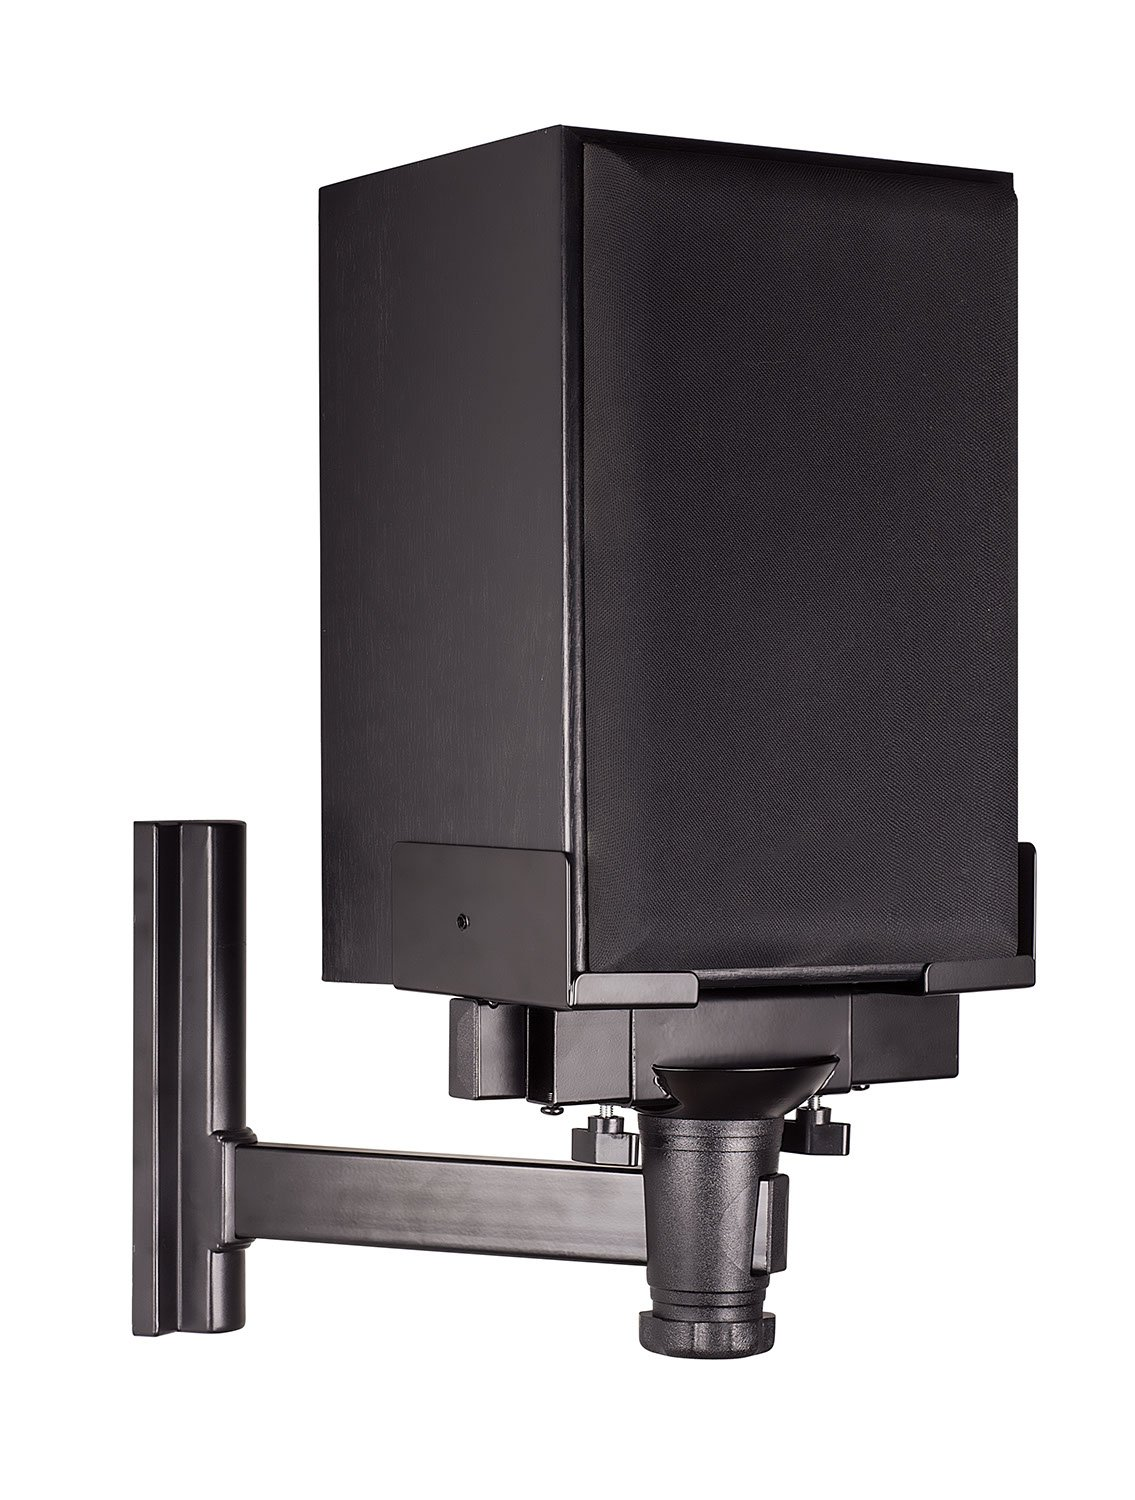 Mount-It! Speaker Wall Mount, Universal Side Clamping Bookshelf Speaker Mounting Bracket, Large or Small Speakers, 1 Mount, 66 Lbs Capacity, Black MI-SB35